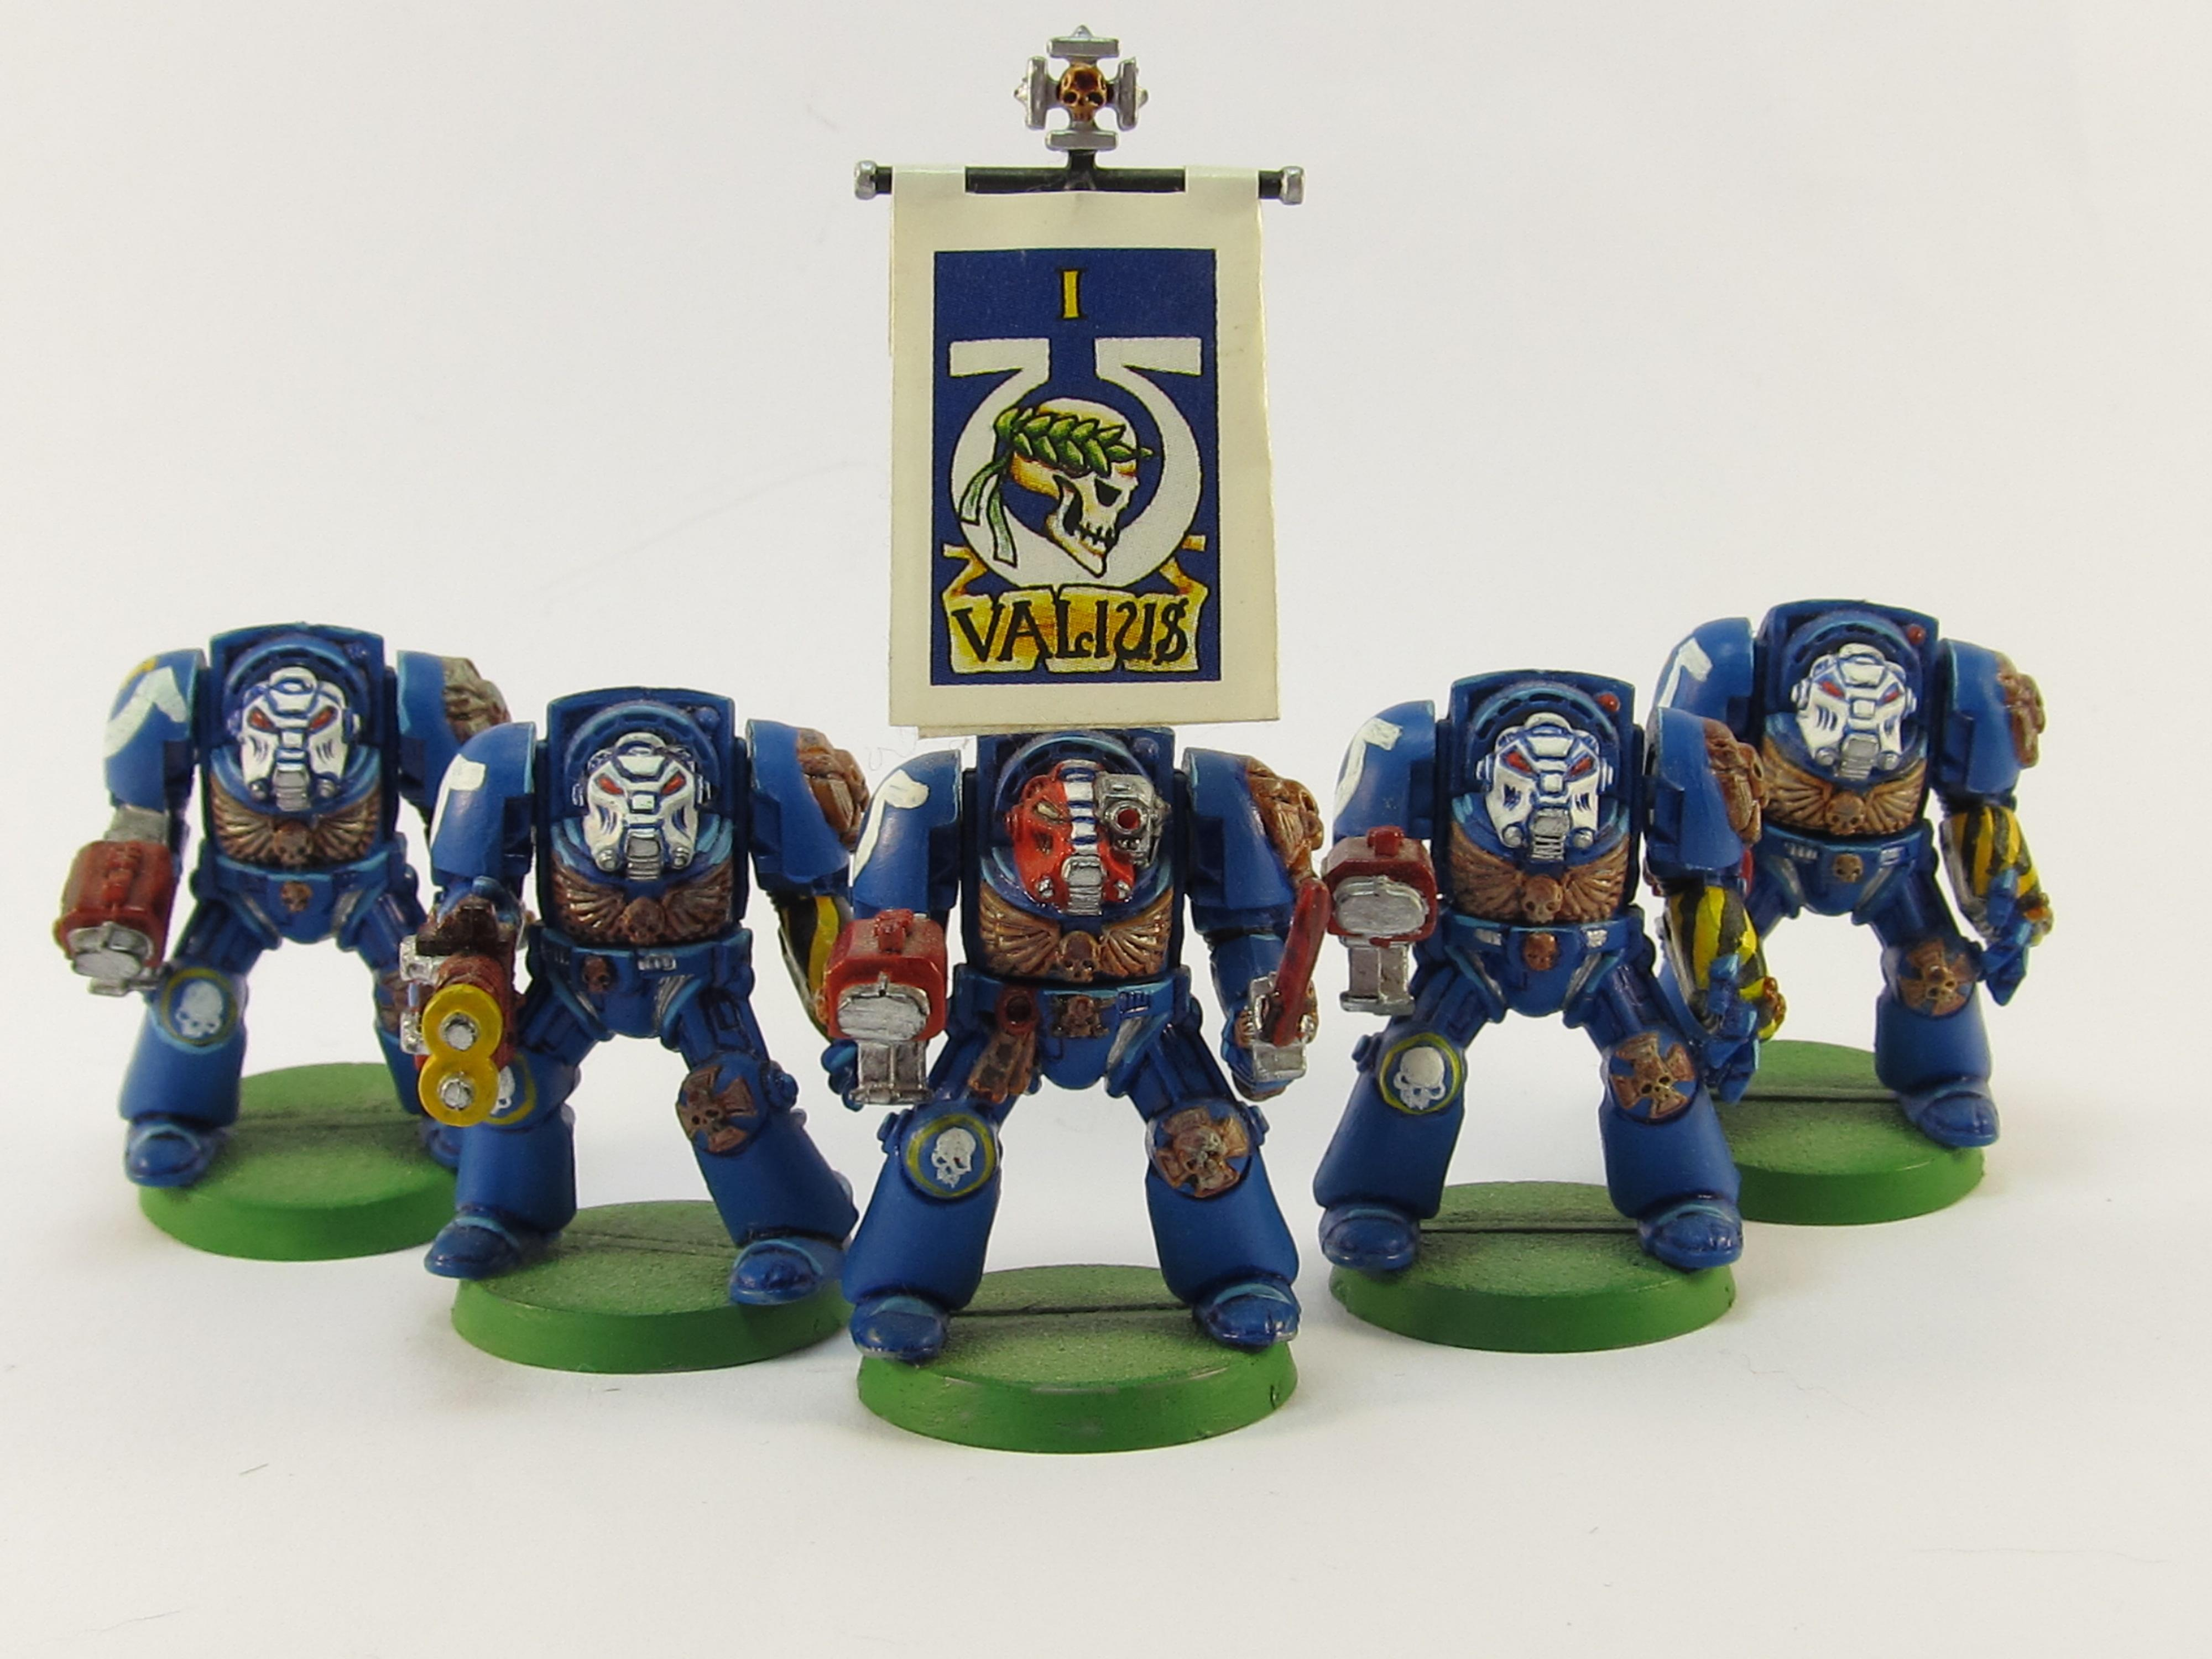 2nd Edition, Classic, Out Of Production, Painted Around 2001 To 2002, Terminator Armor, Ultramarines, Warhammer 40,000